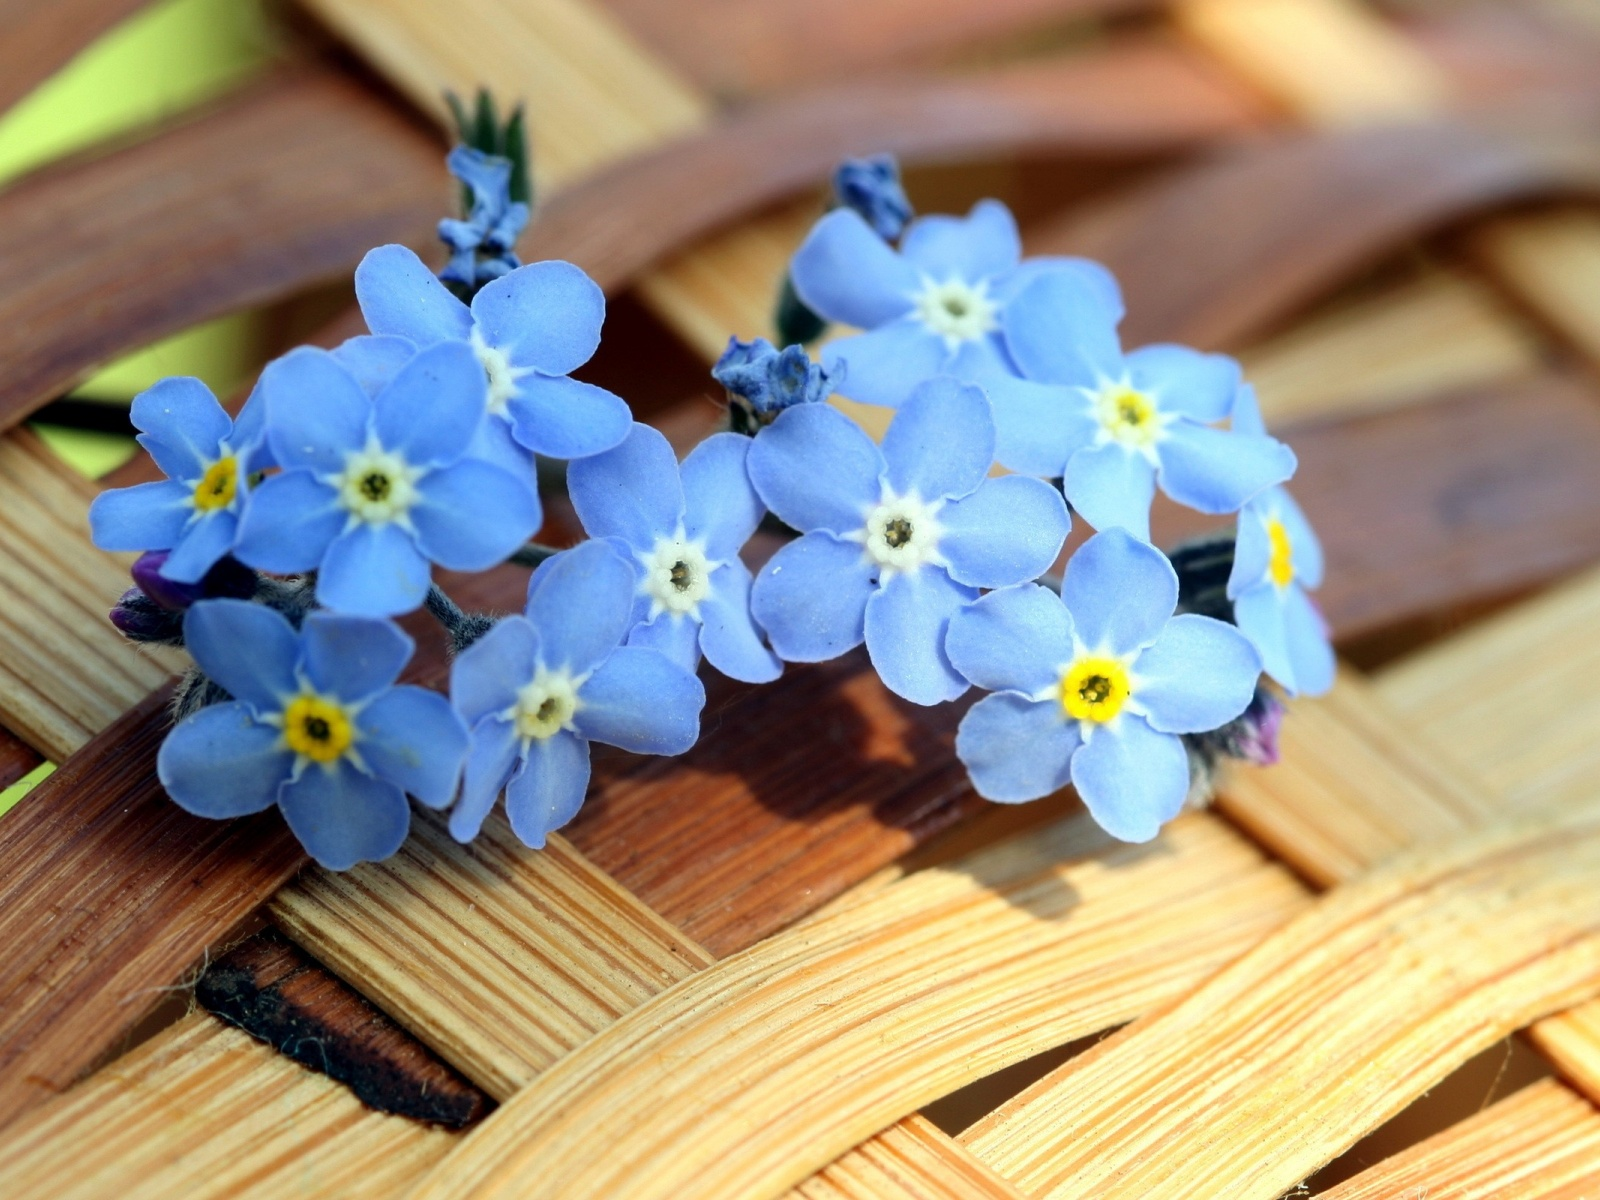 1600x1200 Blue Forget-me-not Flowers